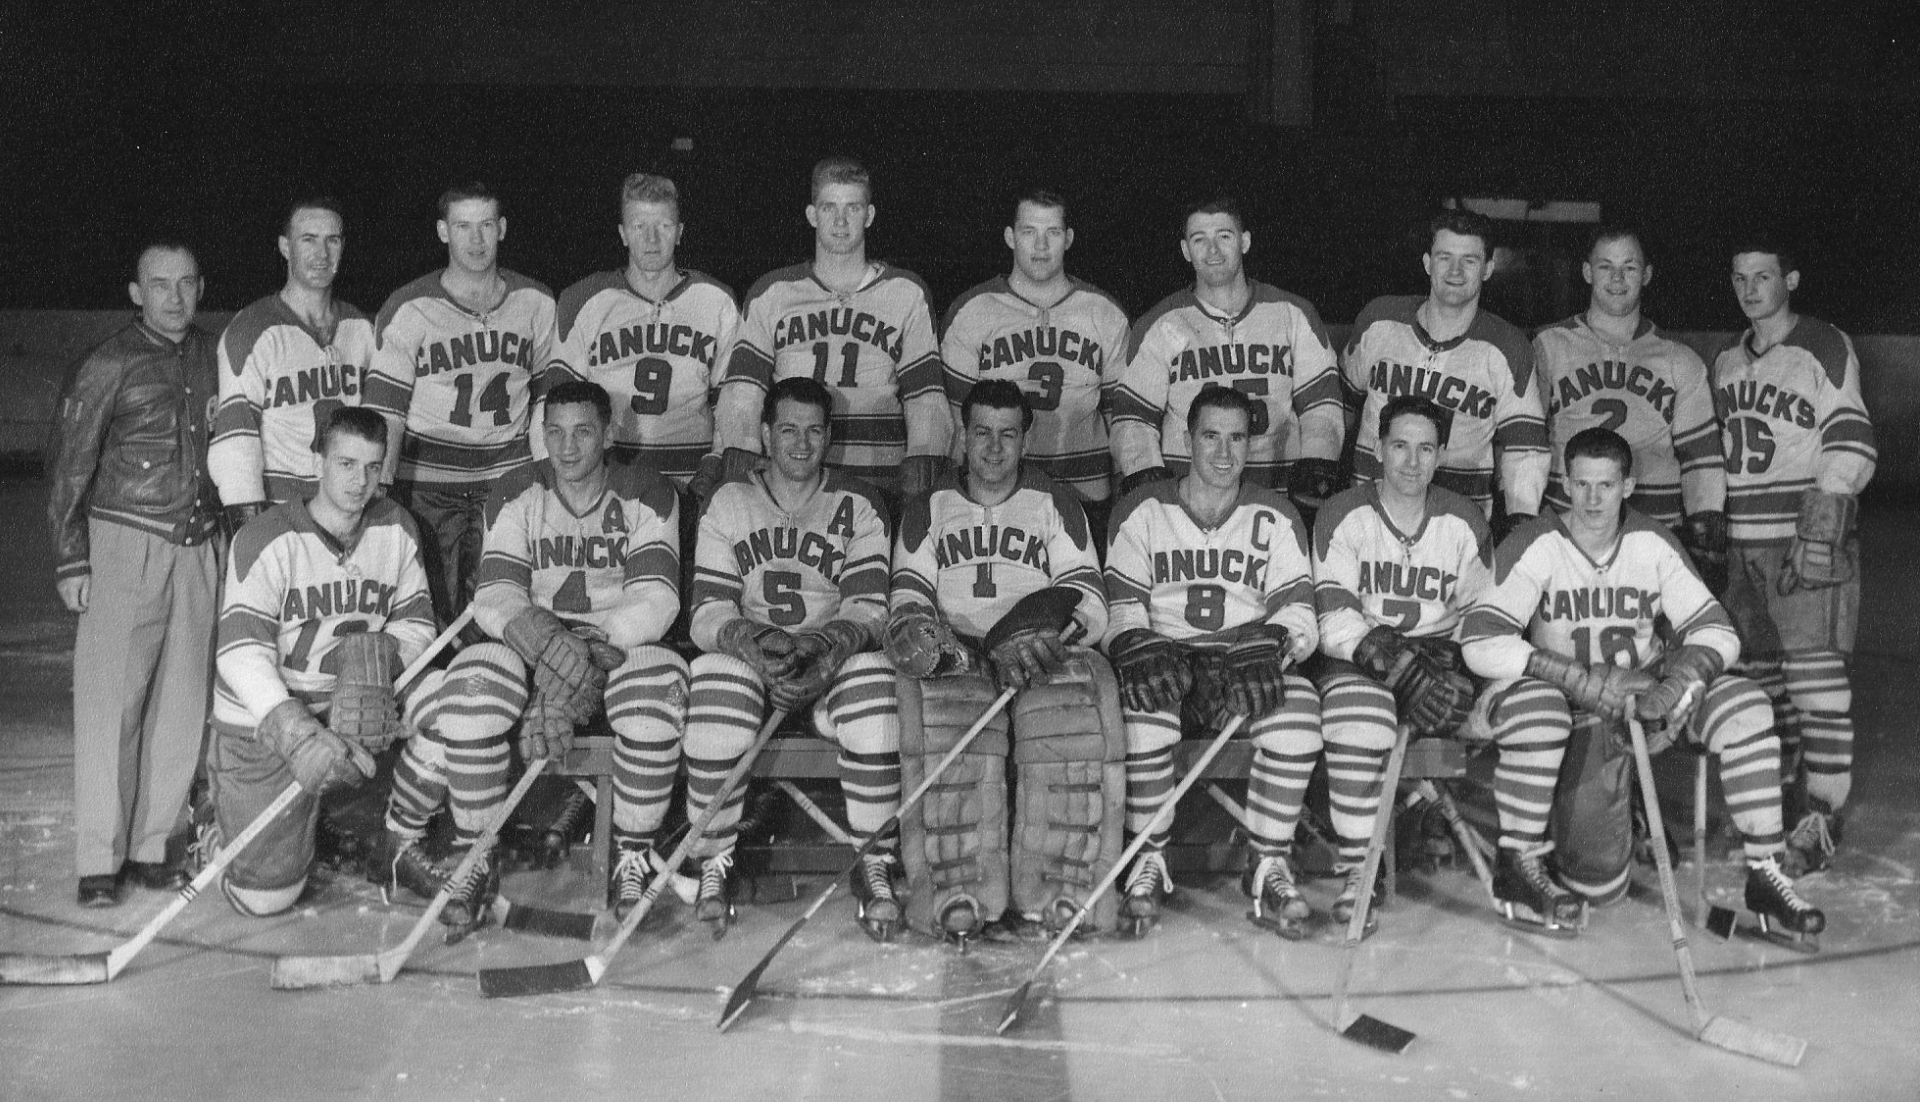 Vancouver Canucks Team Photo 1958 Western Hockey League Champions